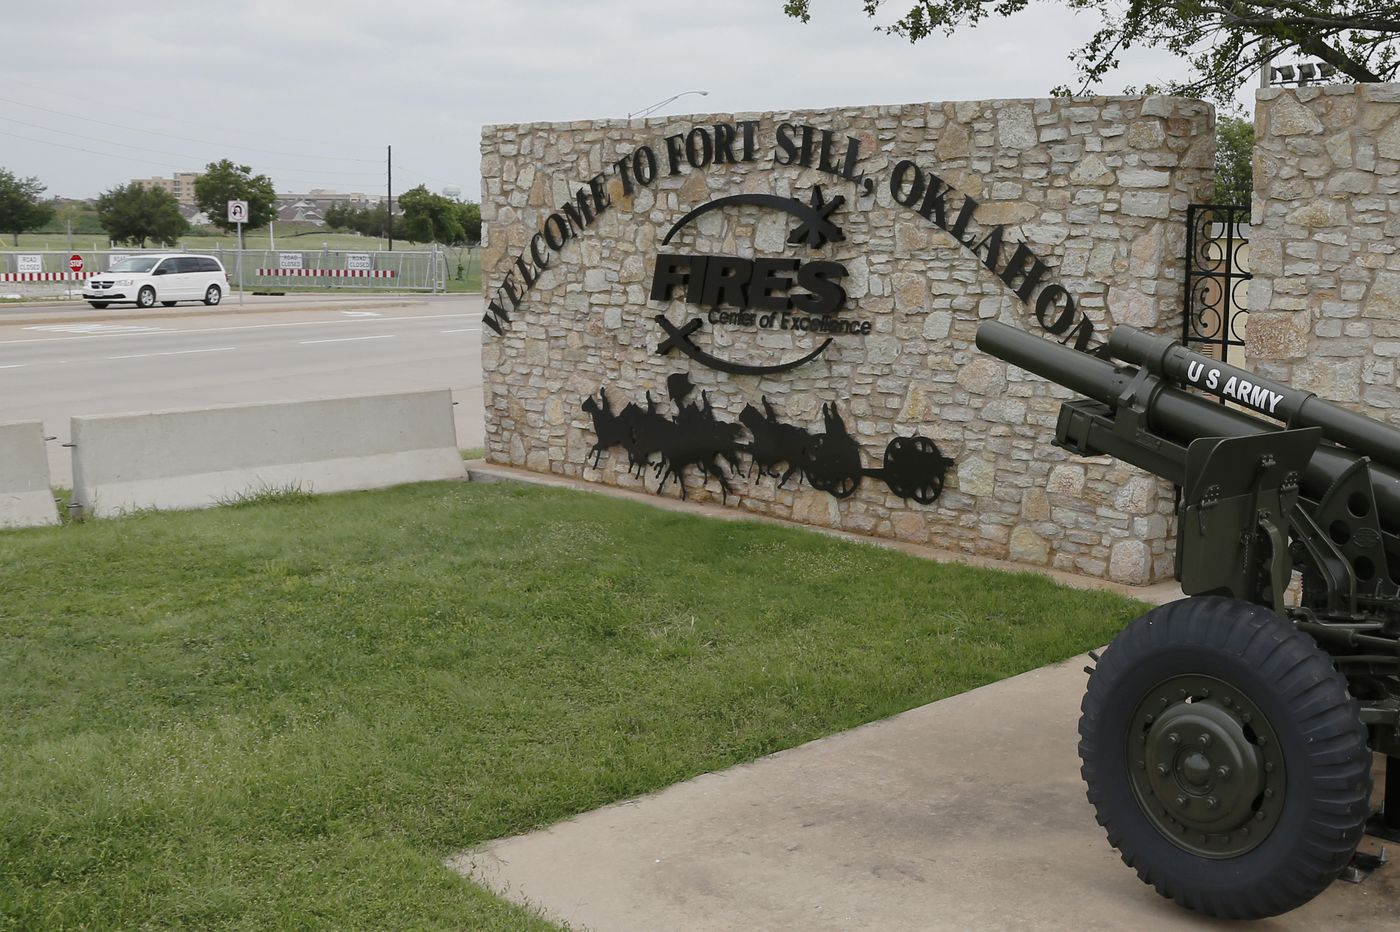 This Army base interned Japanese during WWII. Now it'll be a concentration camp for migrant kids. This needs to stop | Will Bunch